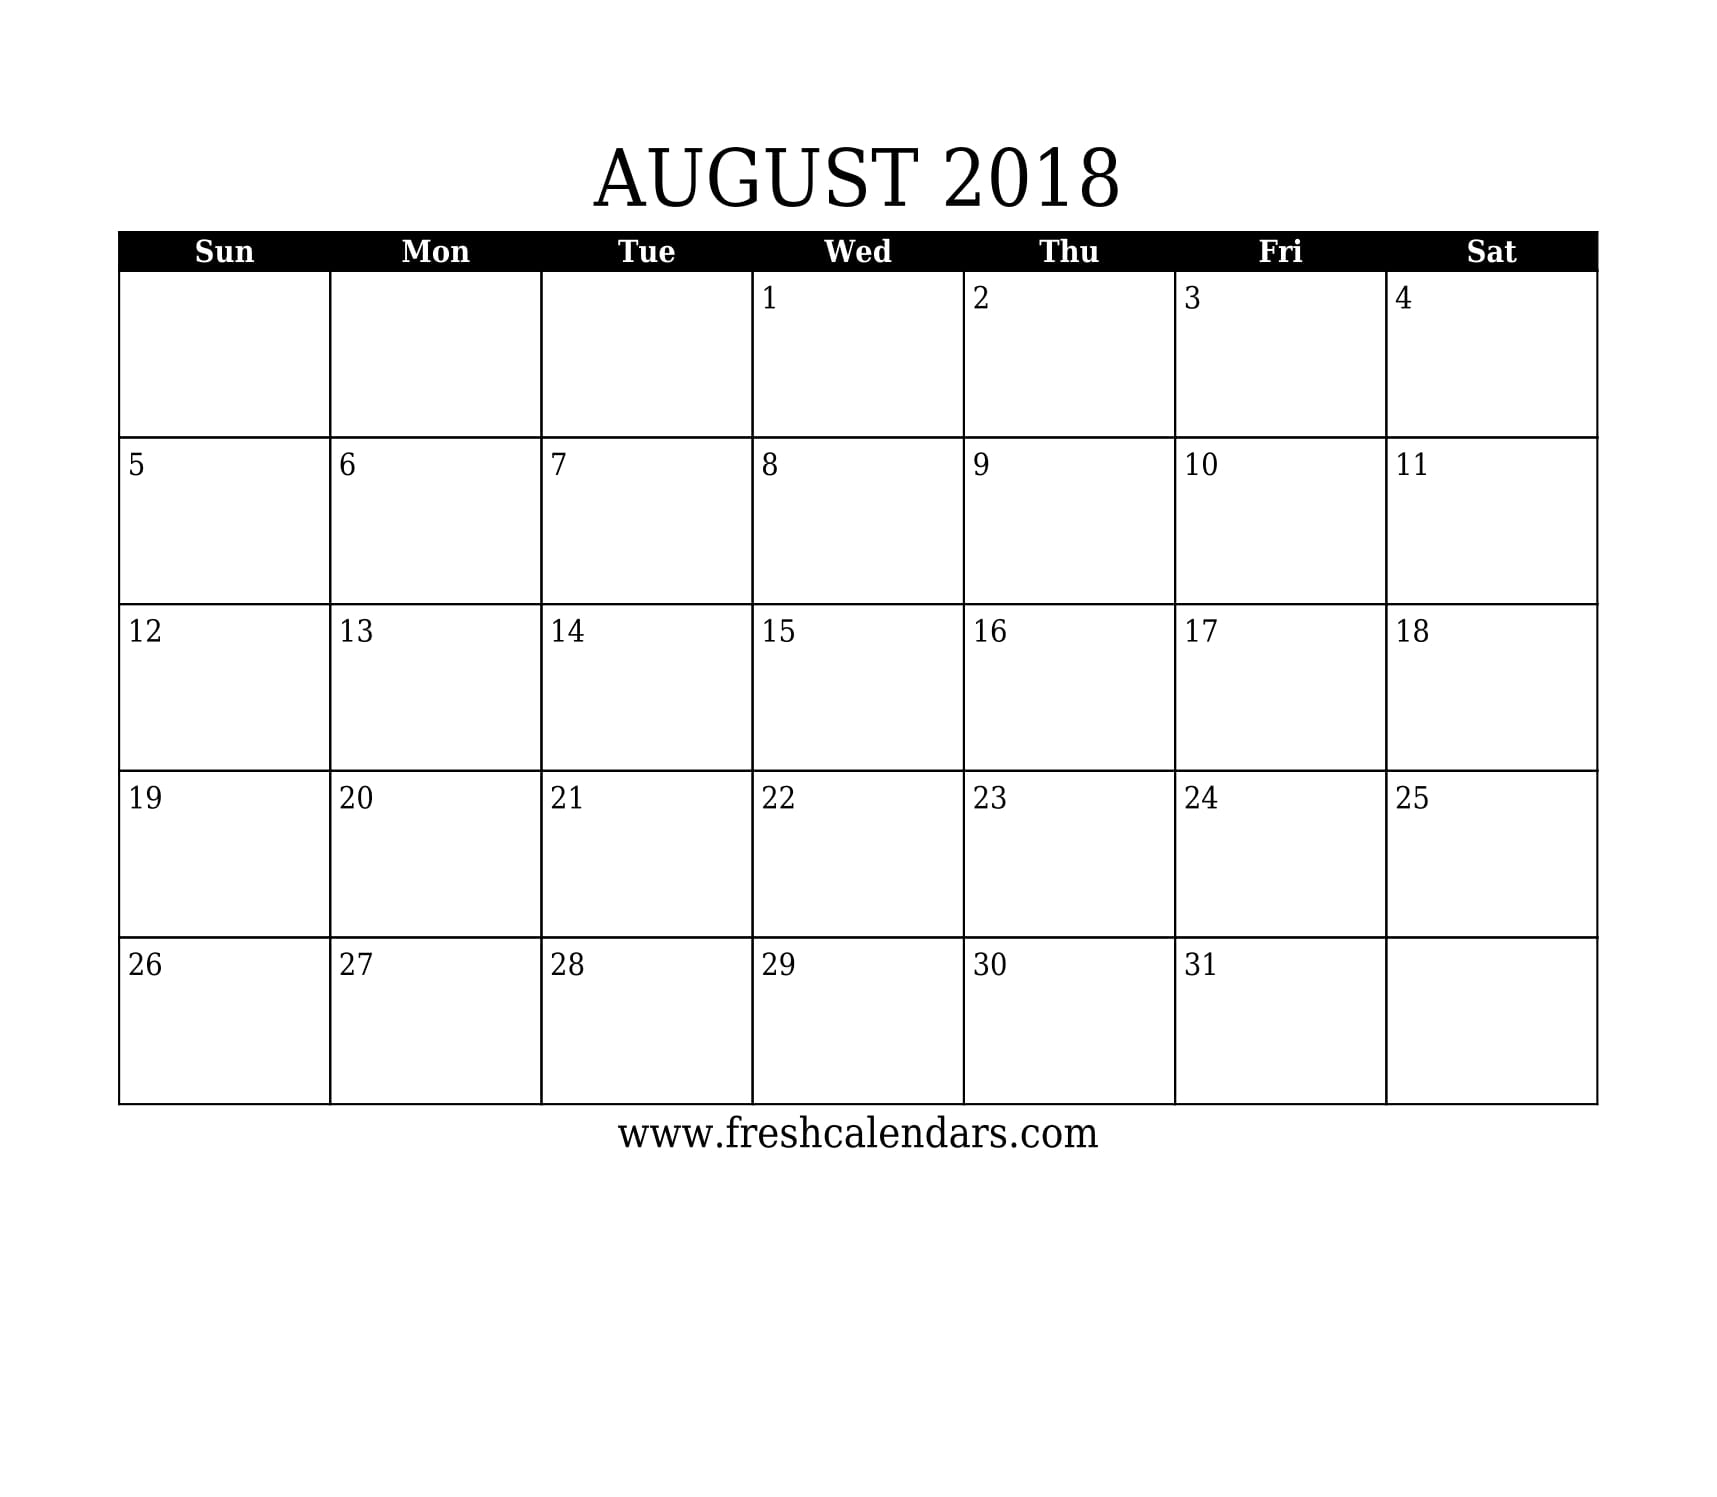 August 2018 Calendar Printable - Fresh Calendars intended for Printable Template Monthly Schedule August